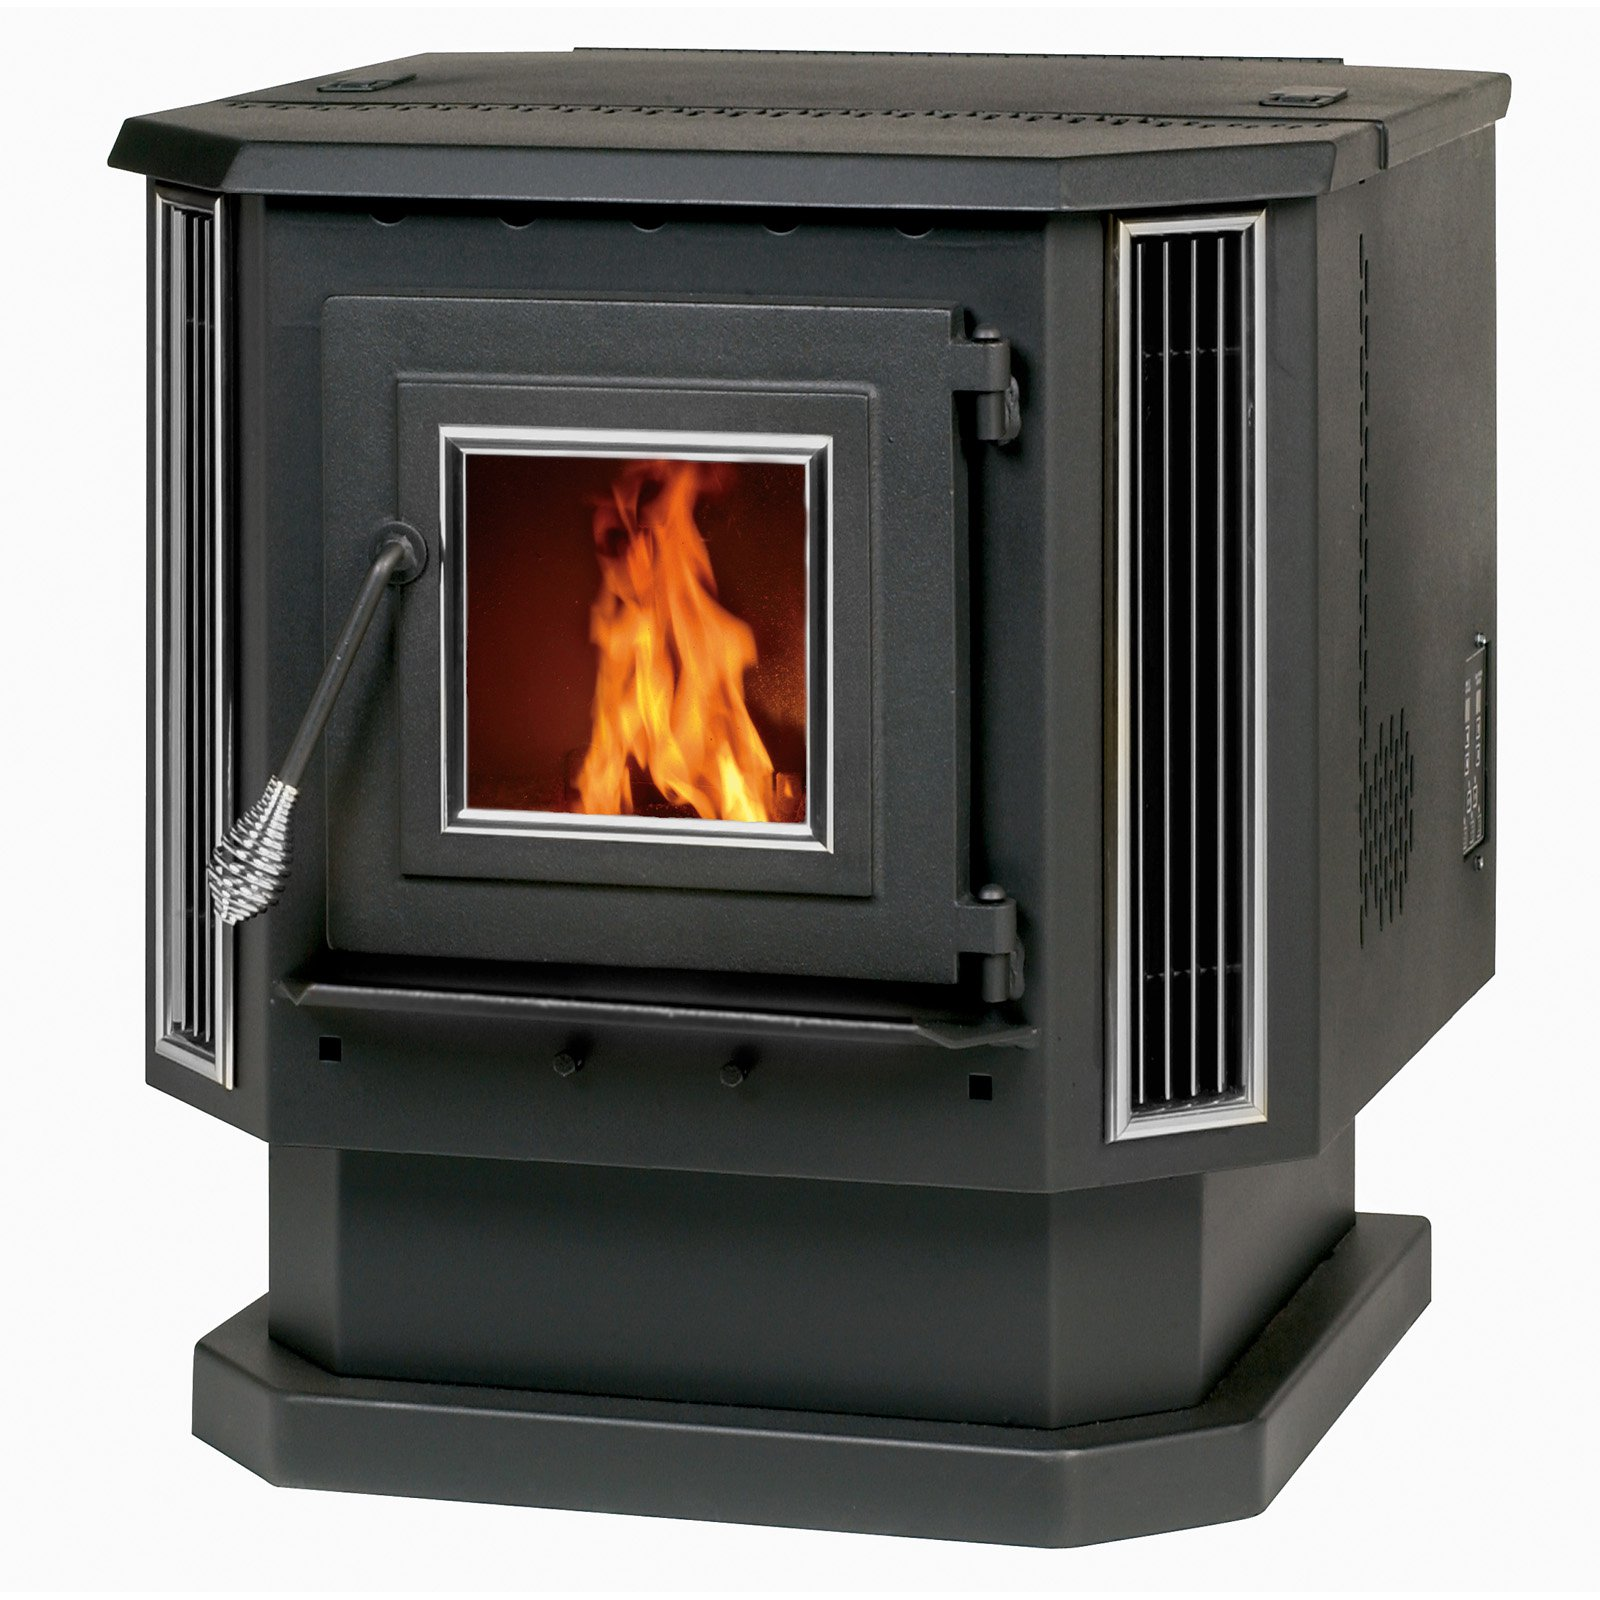 Summers Heat SHP22 Pellet Stove by ENGLAND'S STOVE WORKS